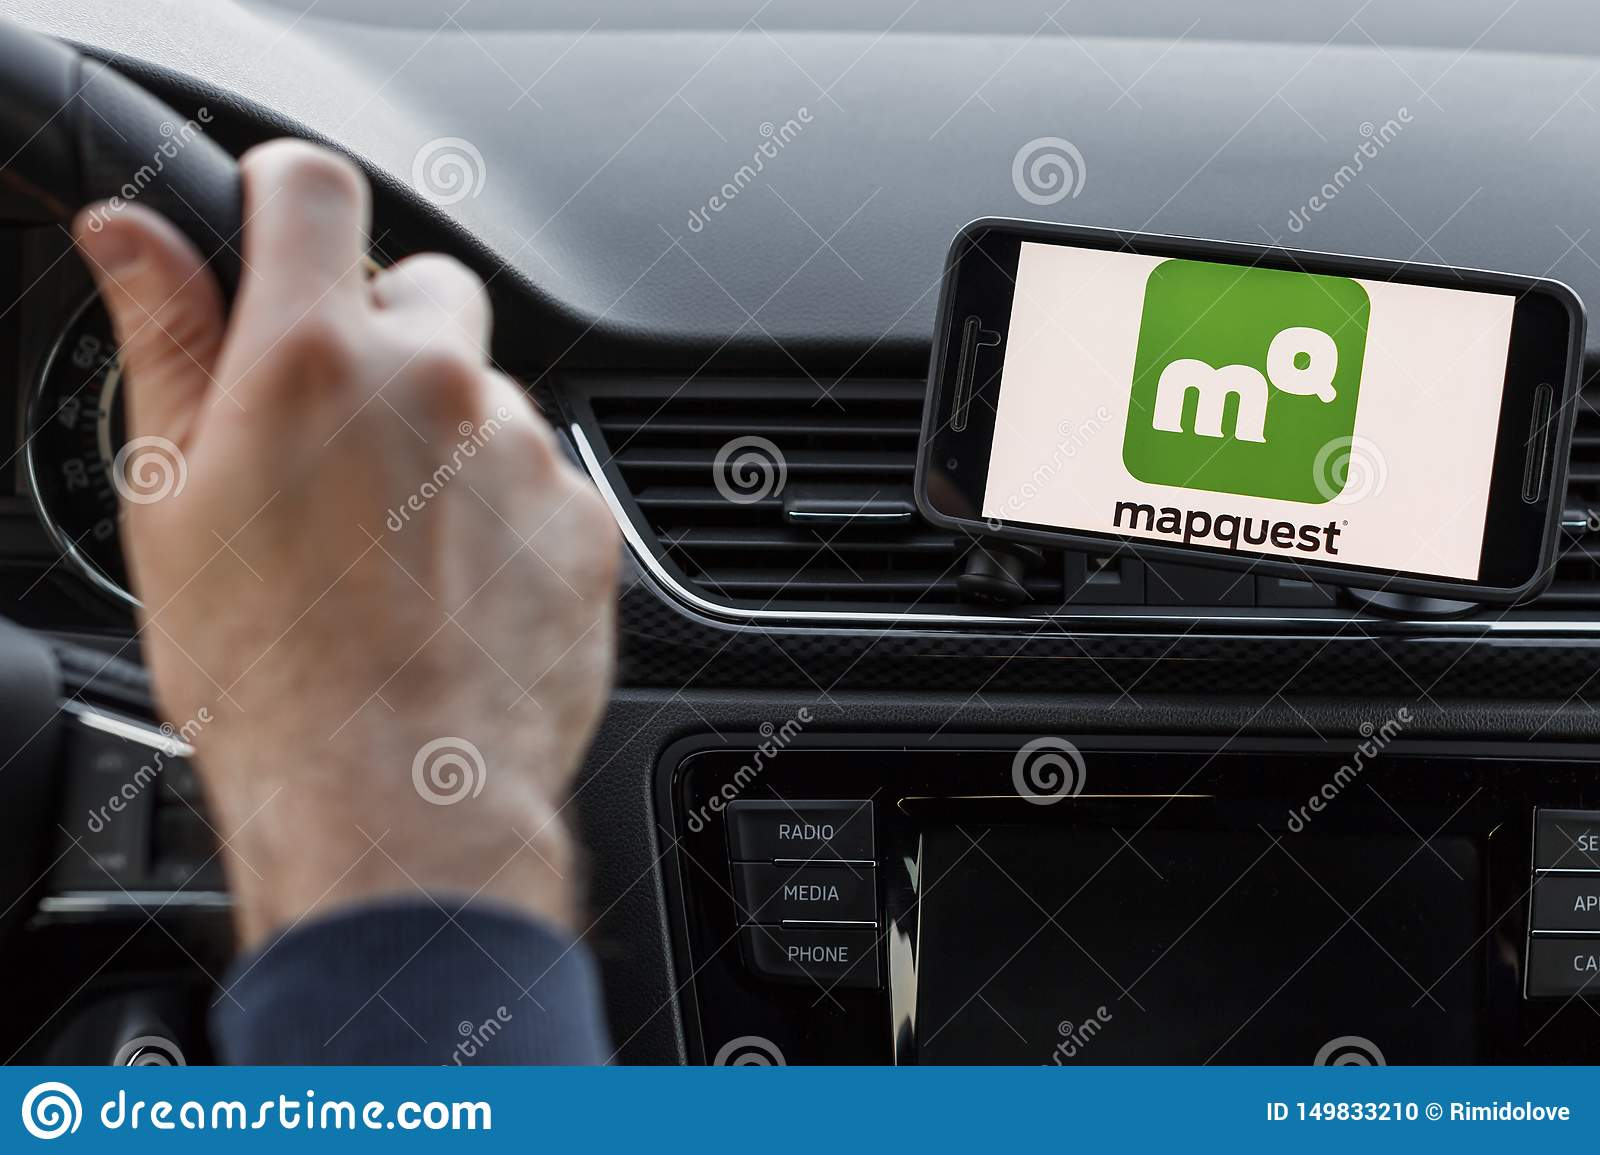 Application Mapquest Stock Images - Download 10 Royalty Free ...